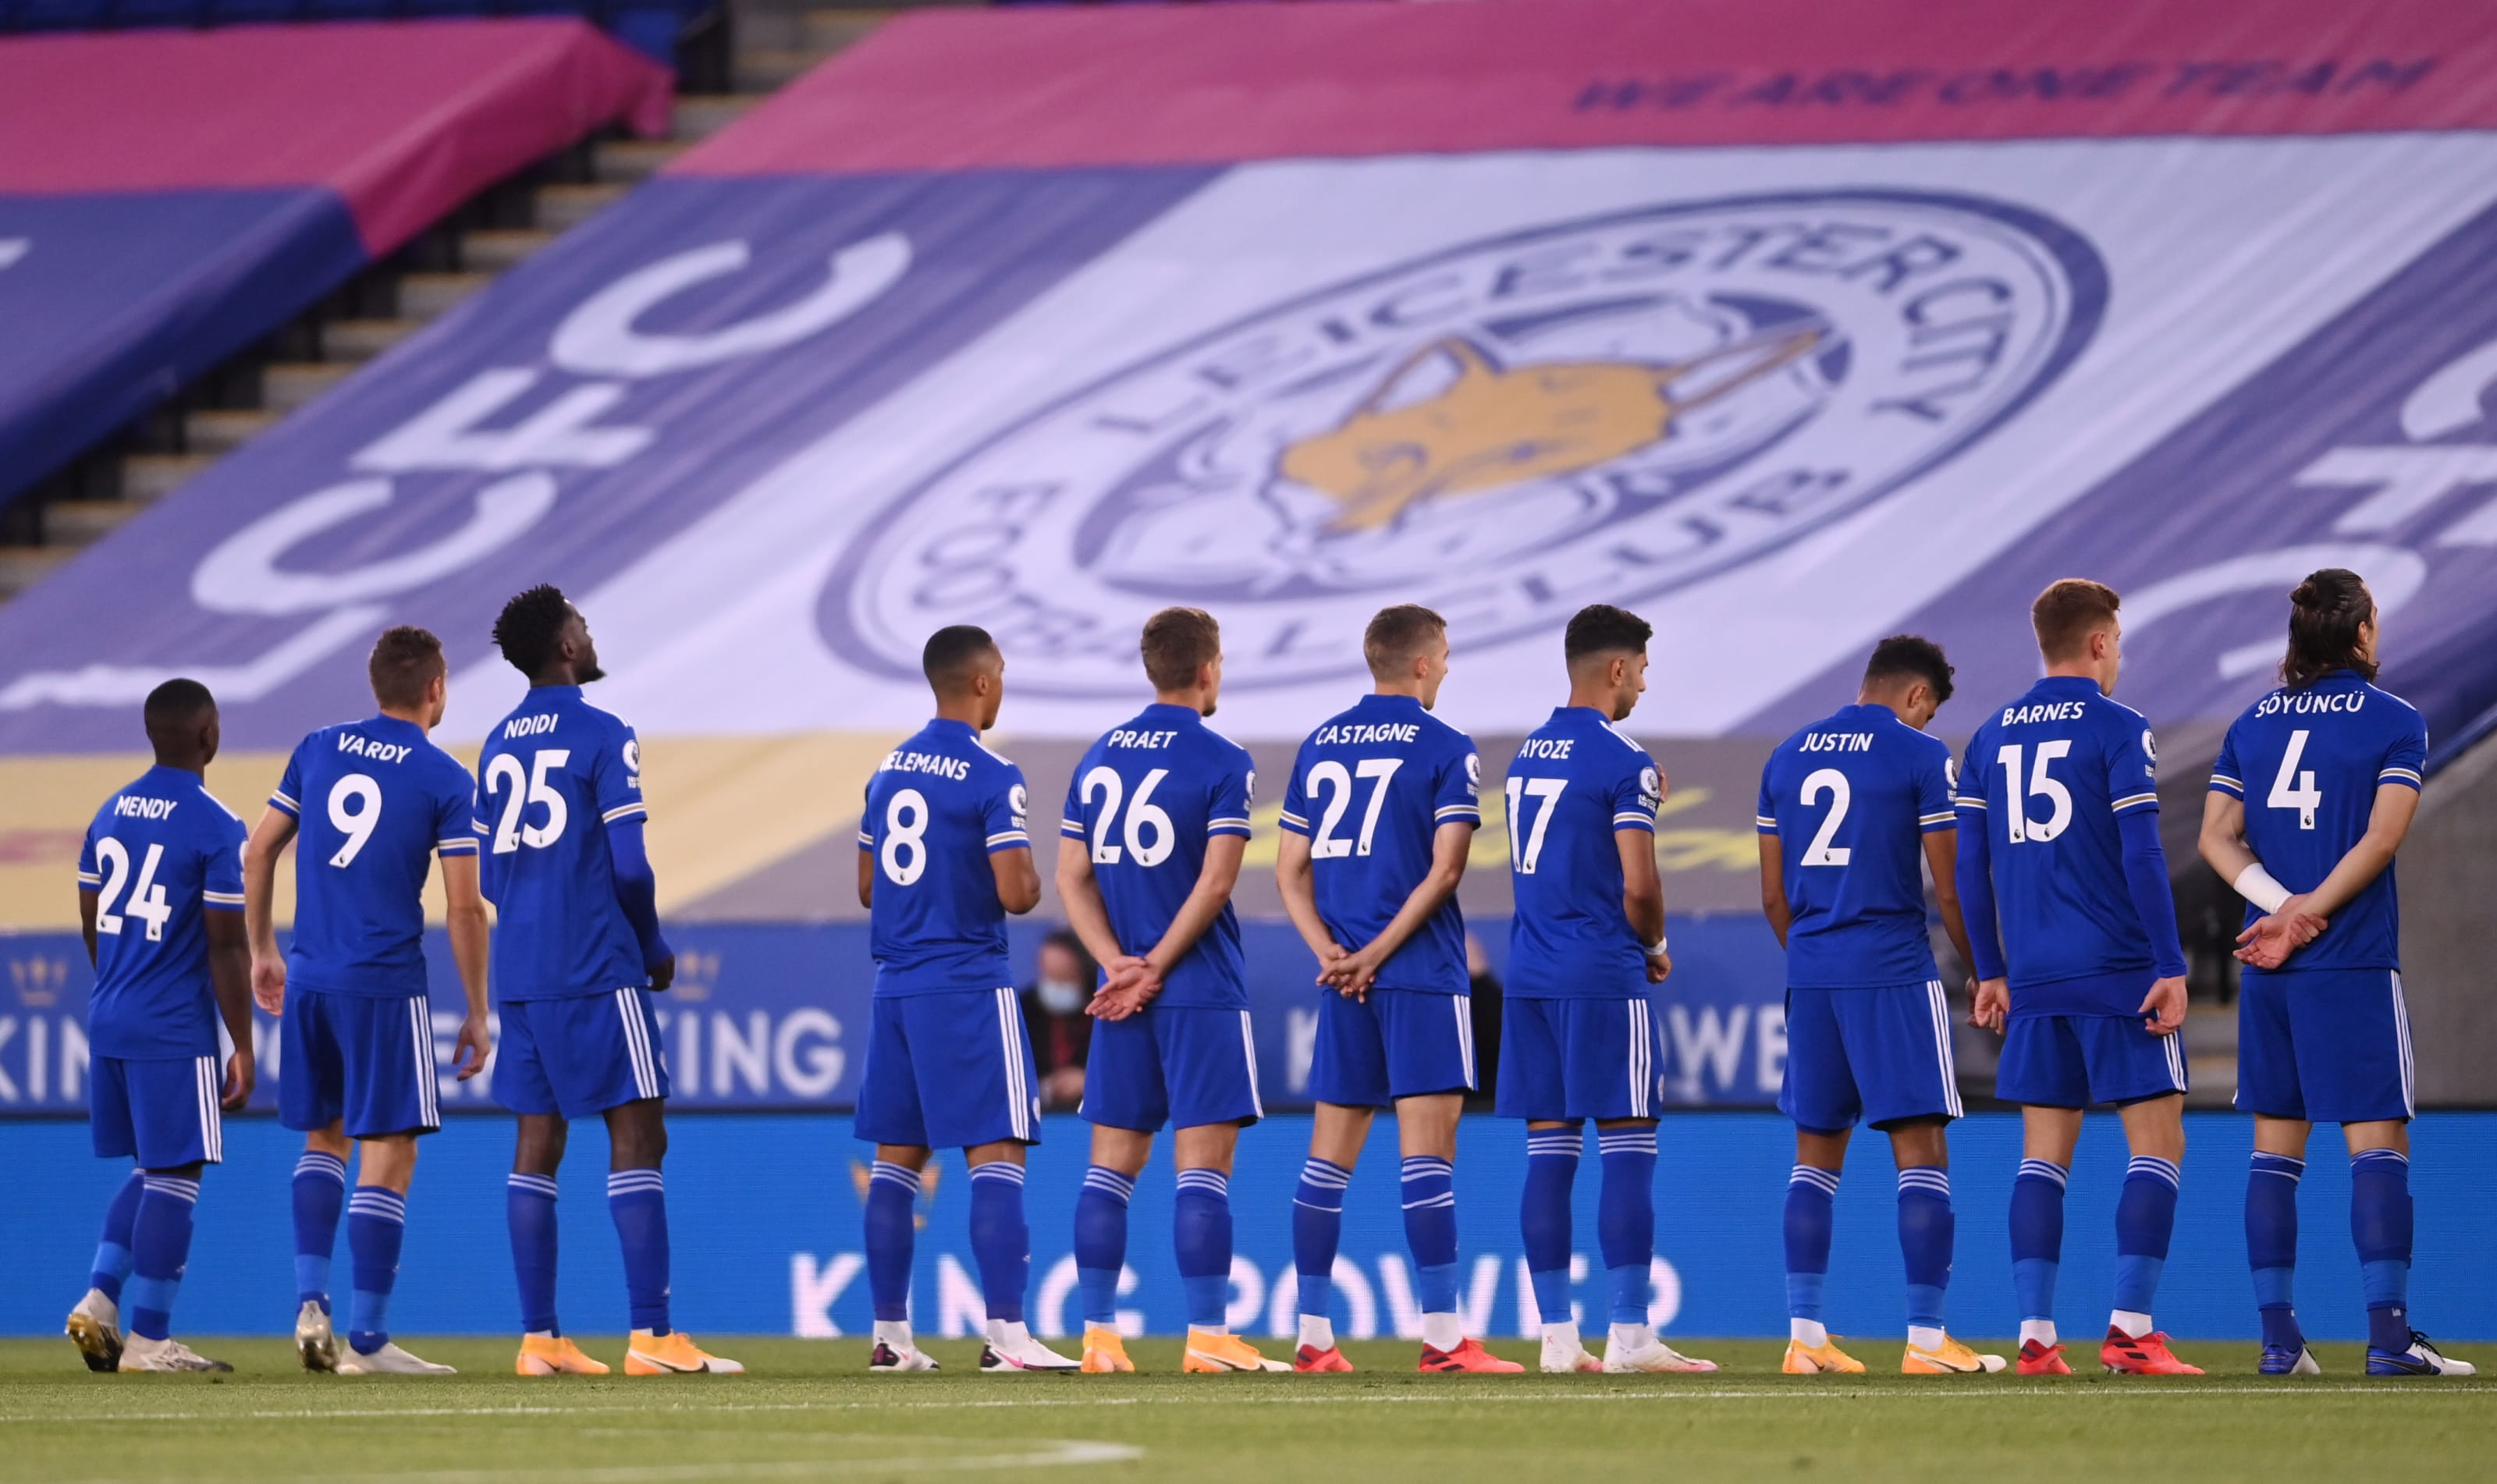 Leicester City's best line-up with new signings included in the side